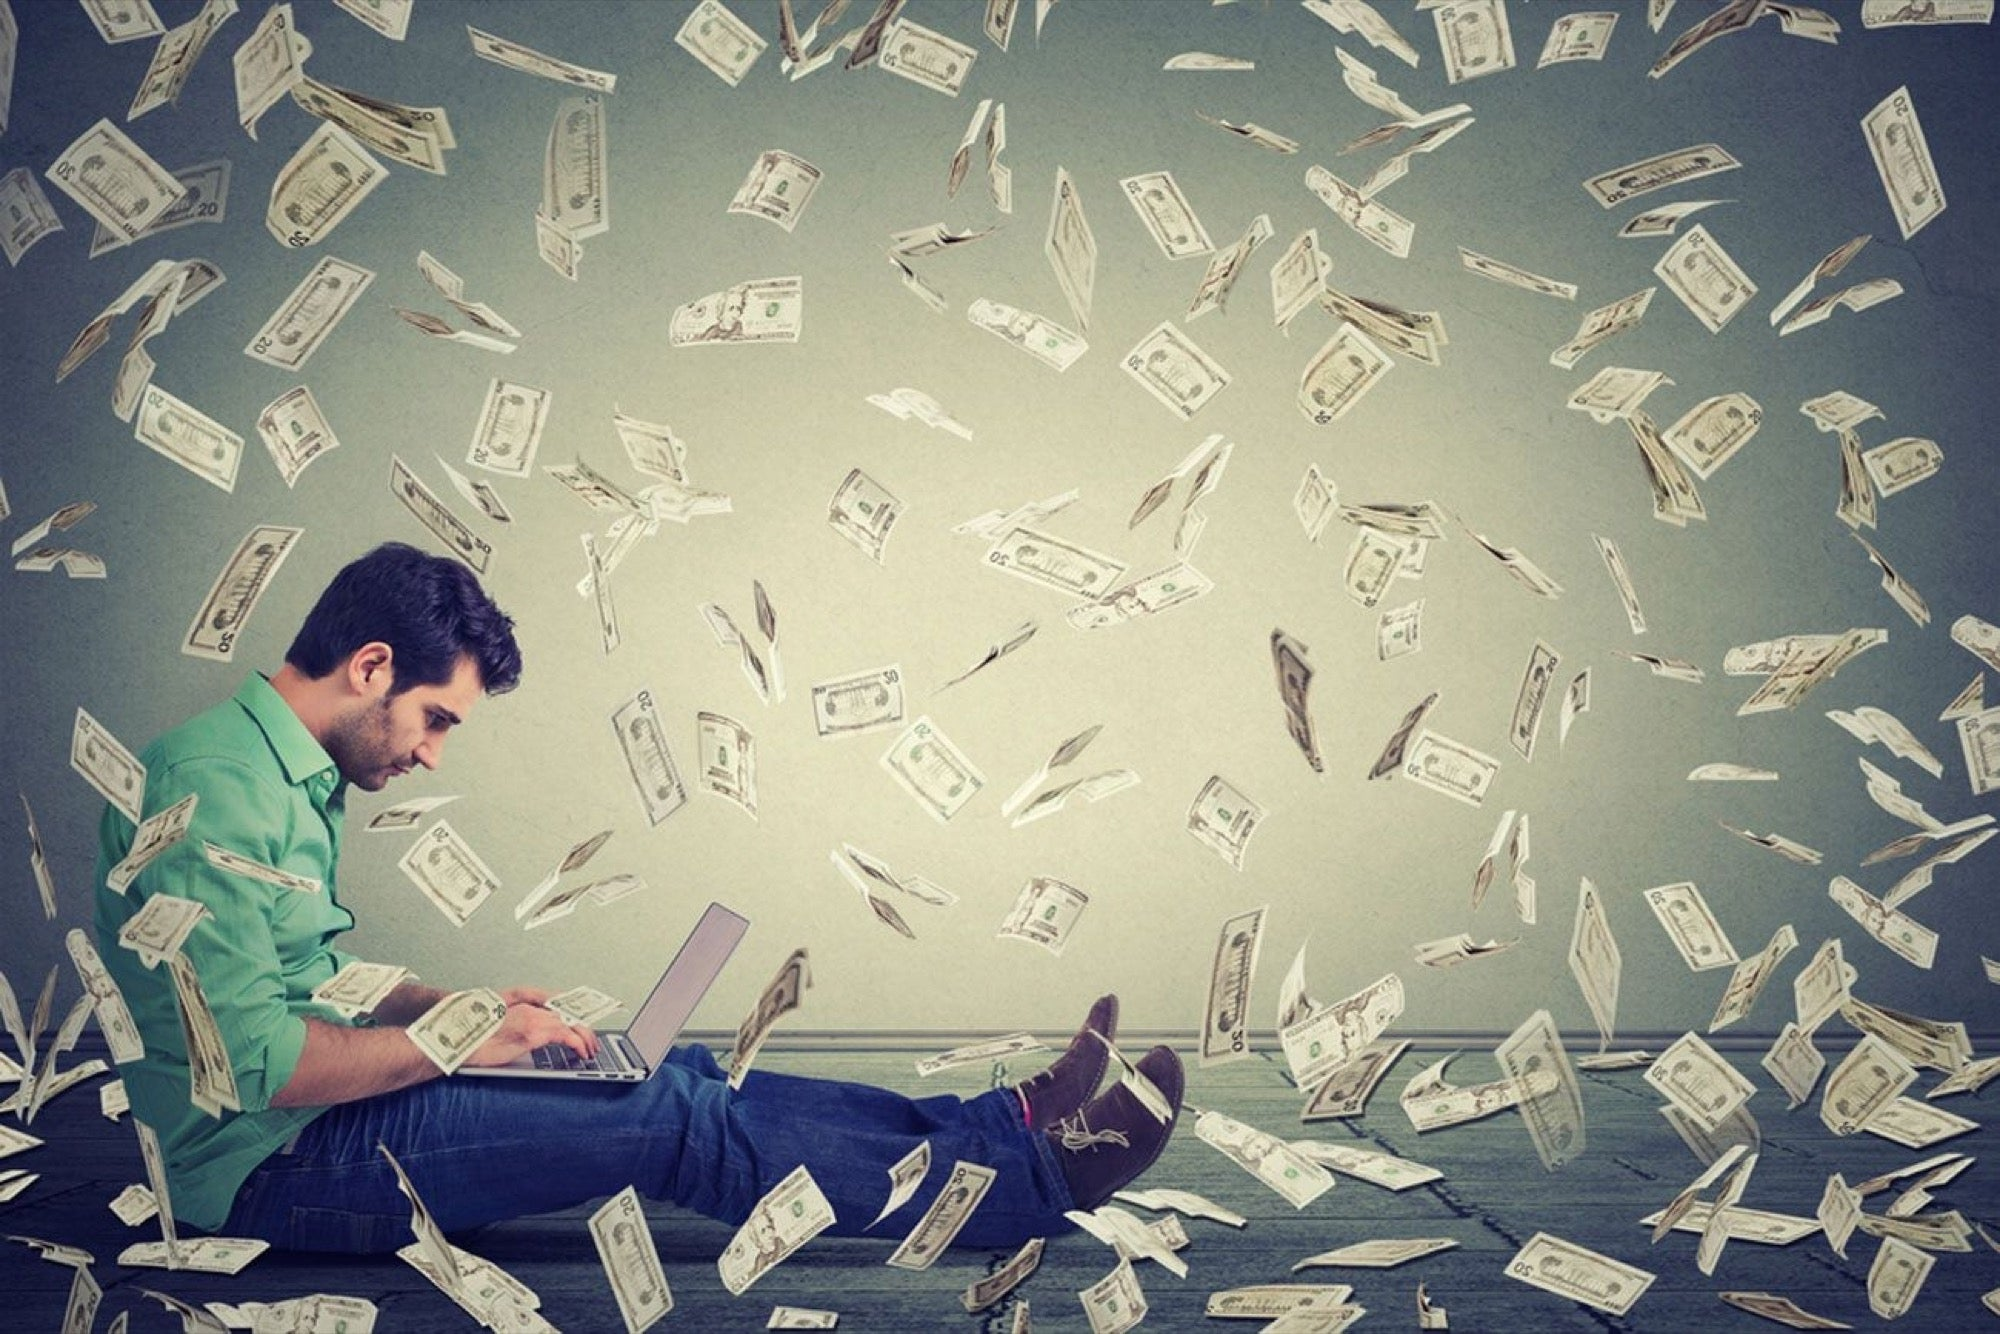 How To Monetize Your Writing Skills and Start a Blog